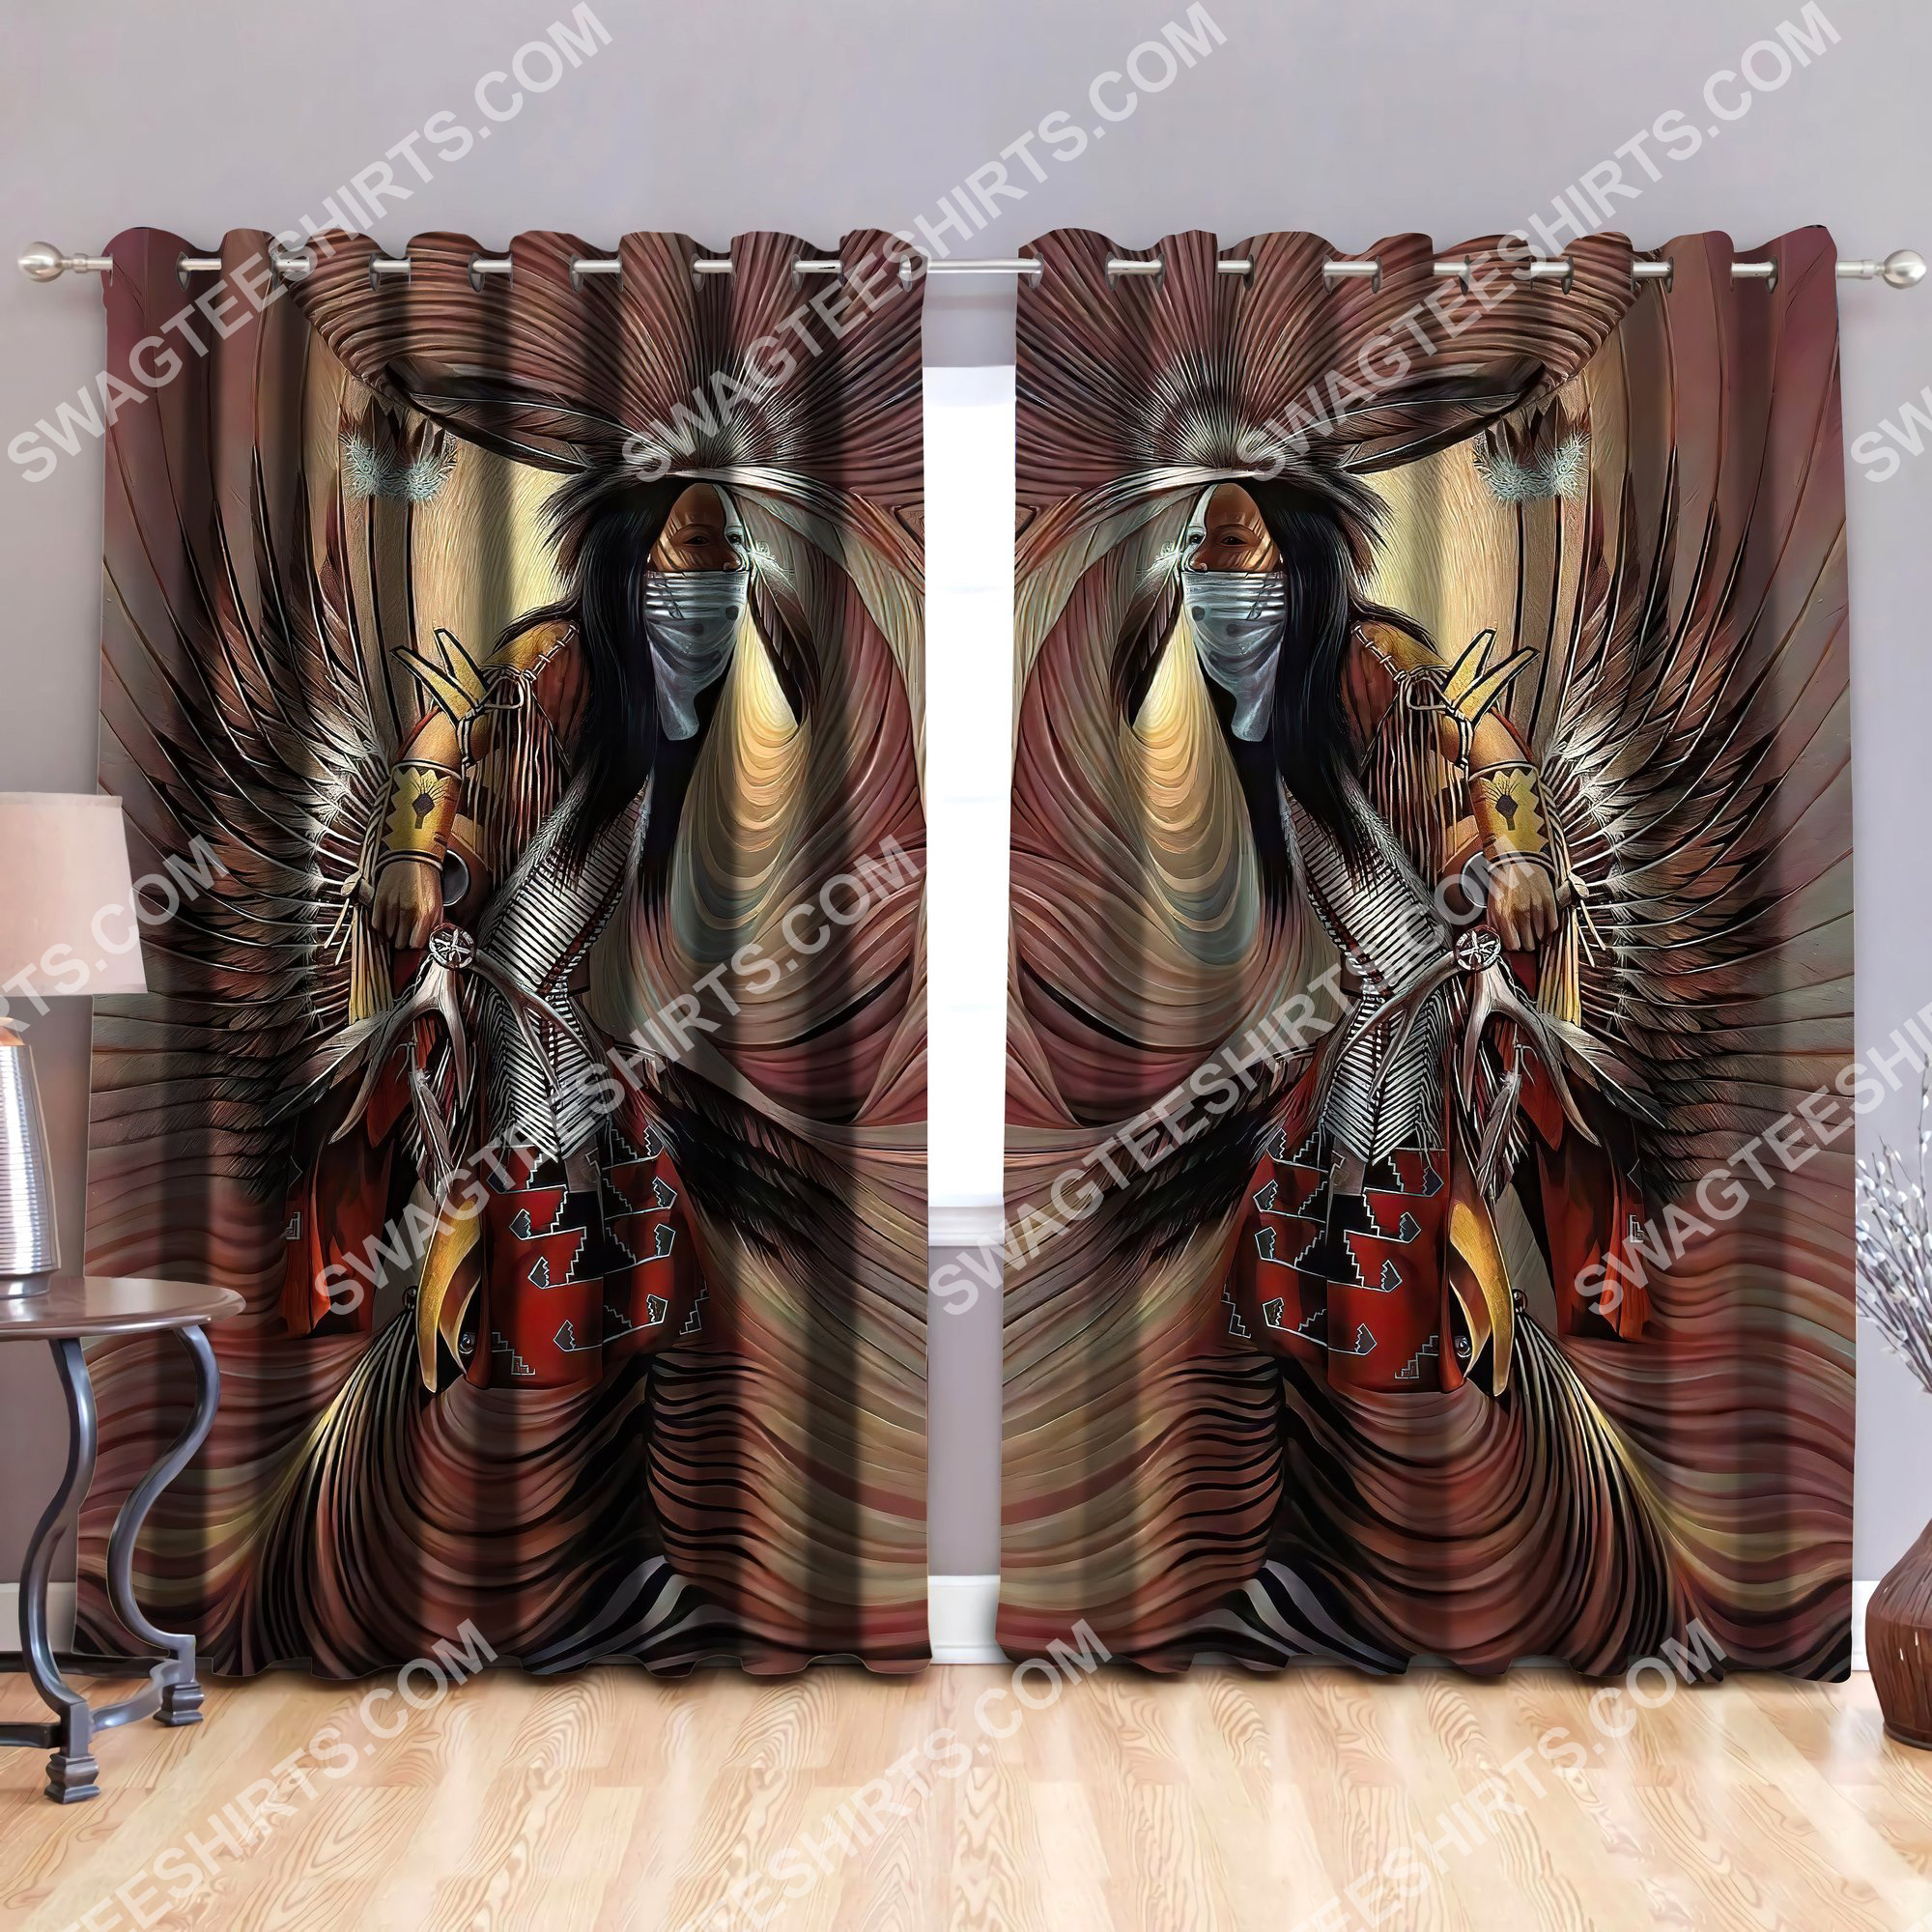 native american man all over printed window curtains 2(2) - Copy